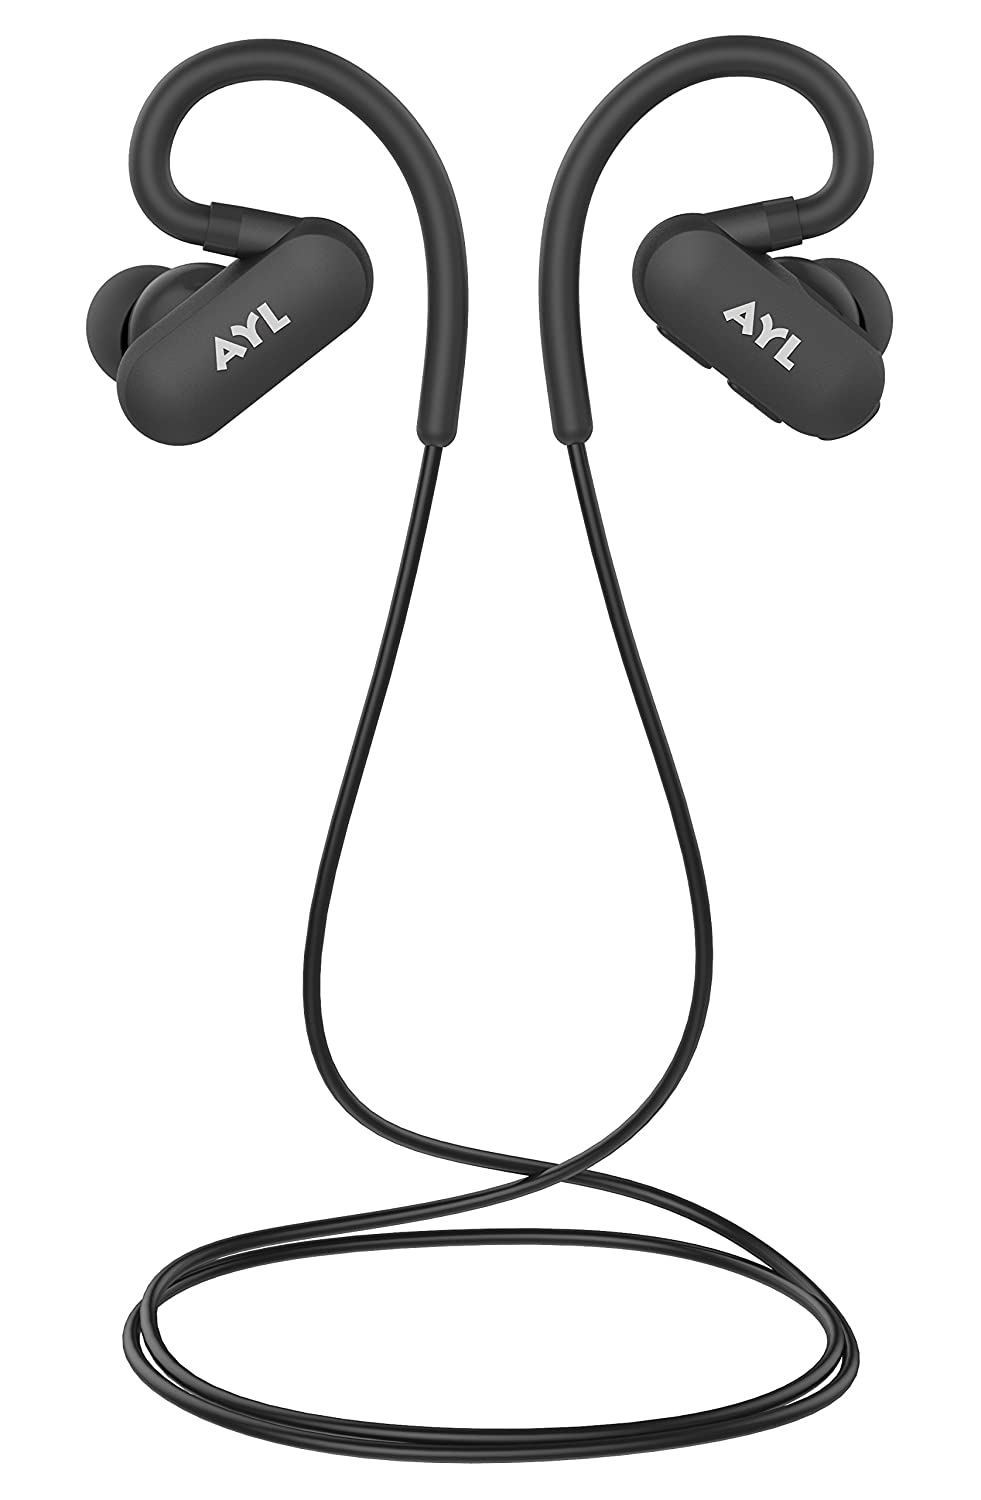 AYL Bluetooth Headphones Sweatproof Running - Wireless Earbuds Sport, Richer Bass Stereo in-Ear Earphones w/Mic, Noise Cancelling Headsets with Wireless Headphones Buds (Black) A89